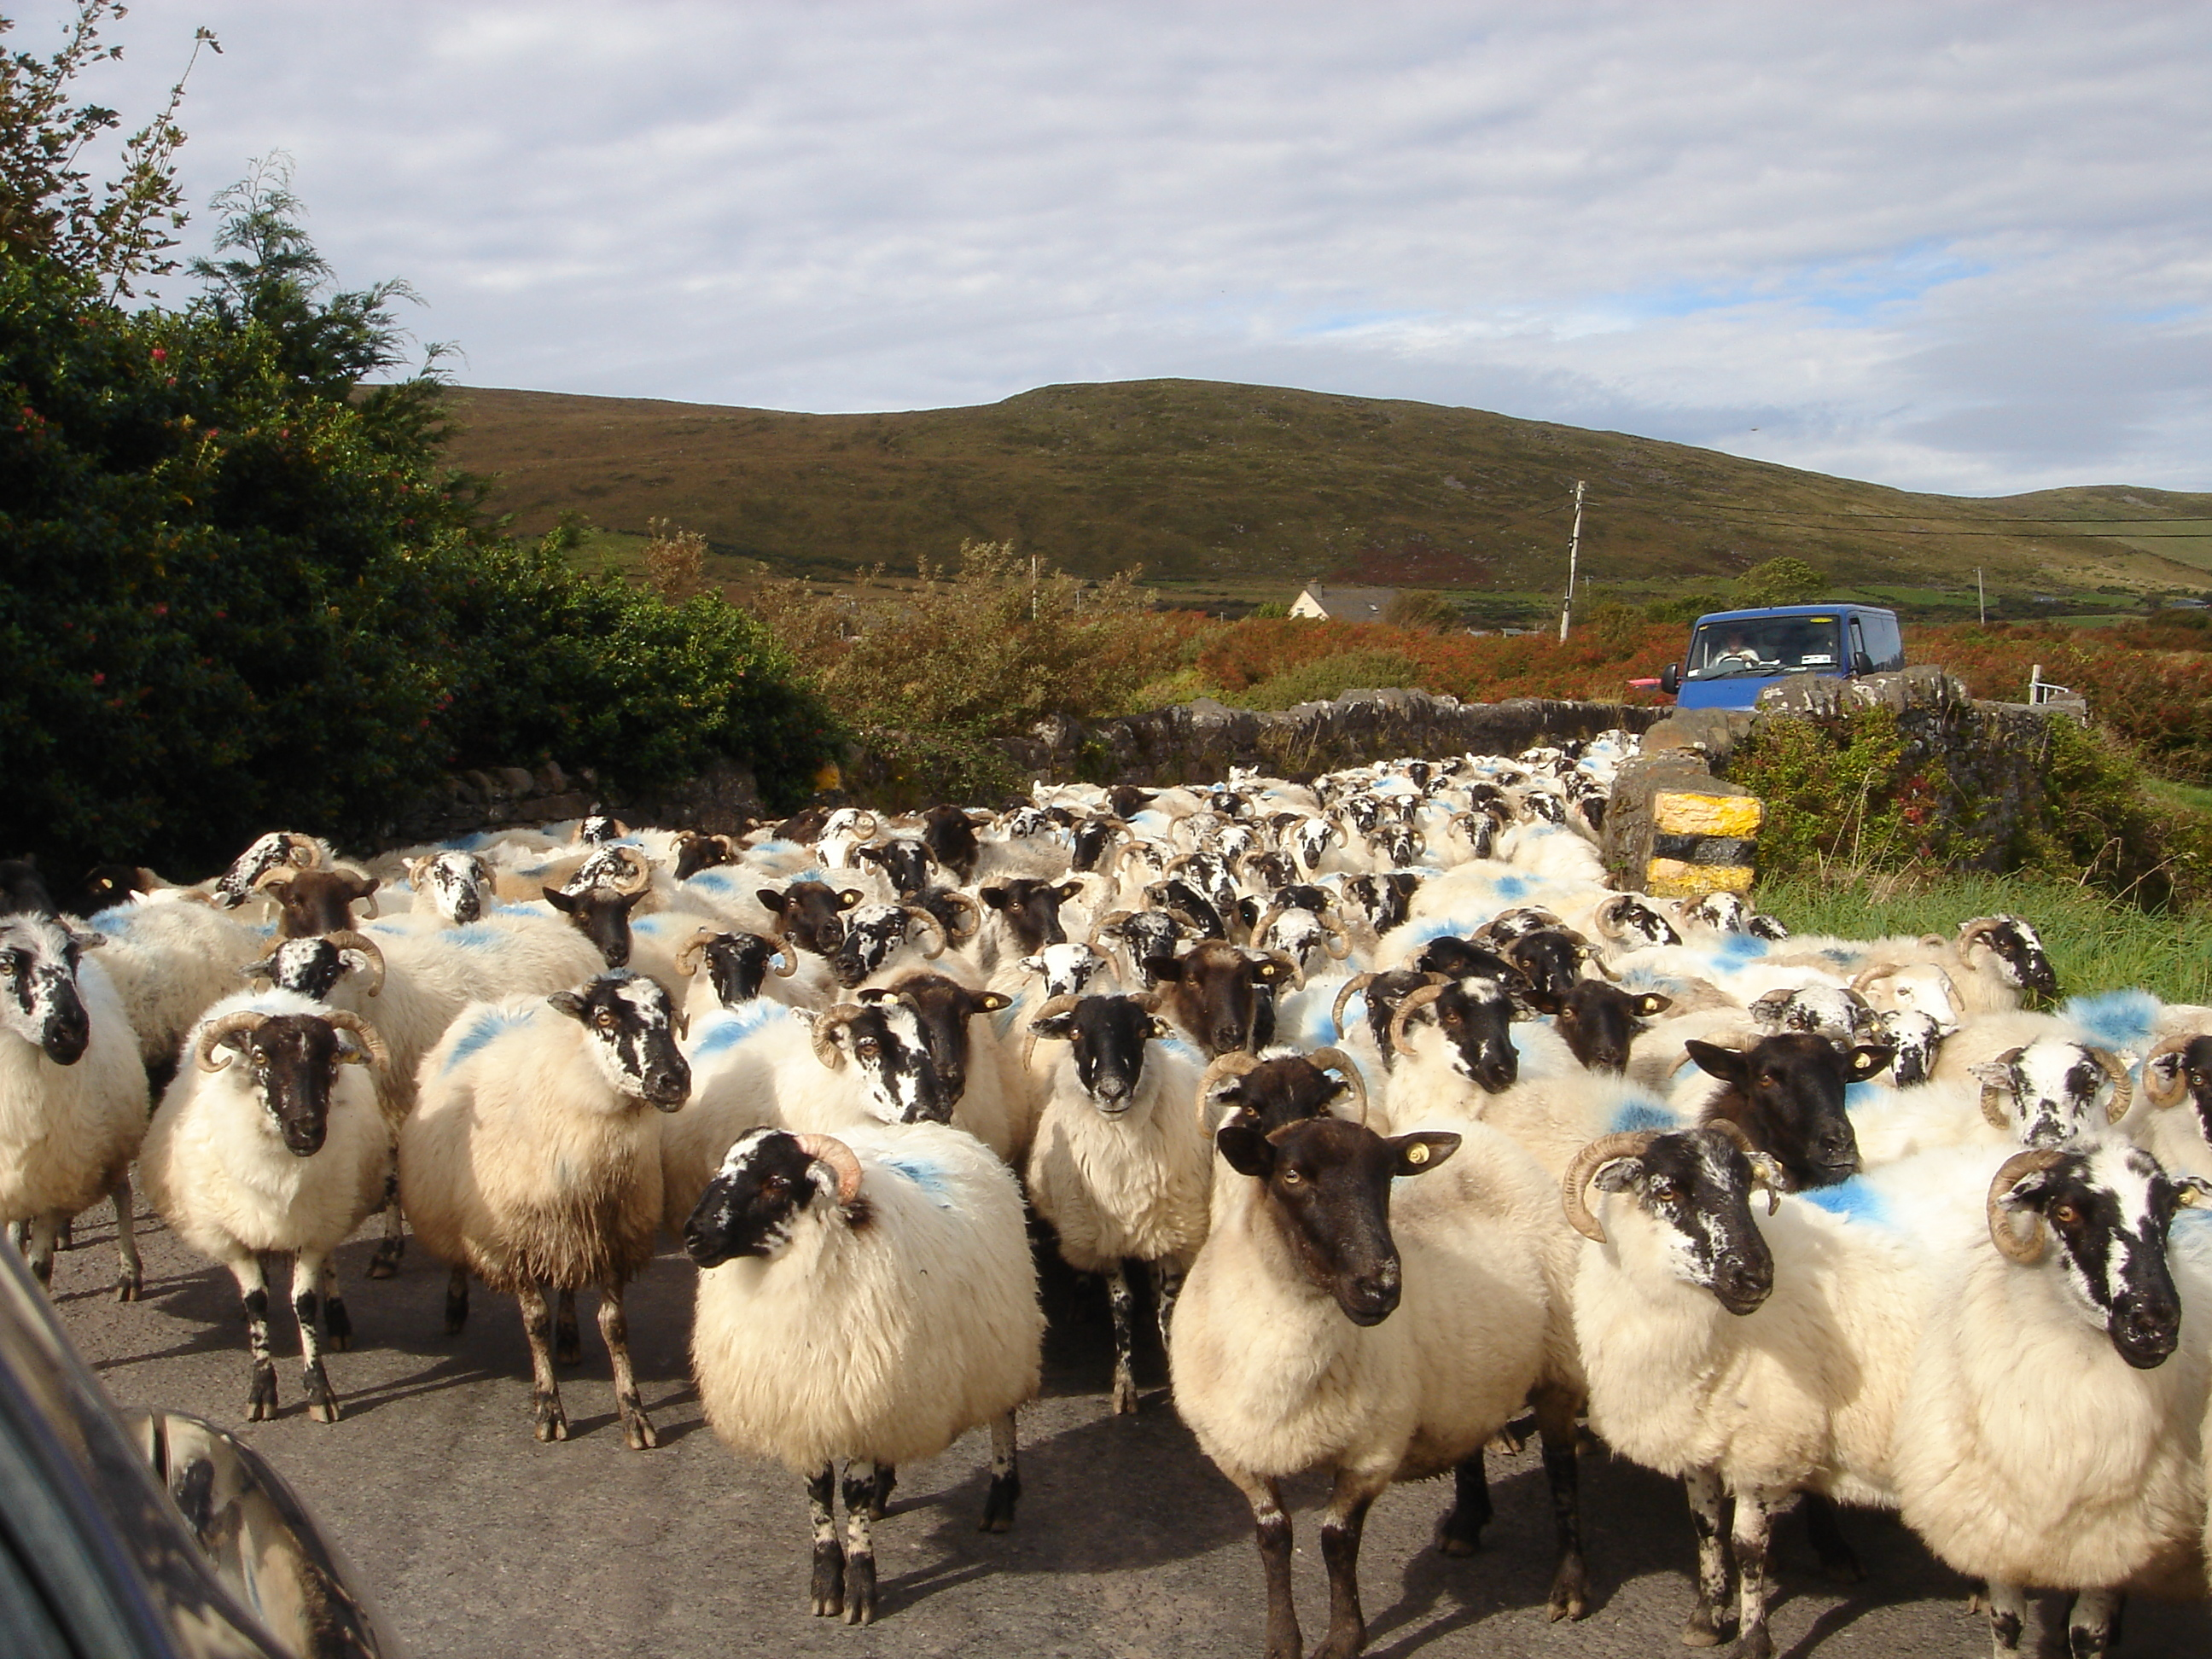 Sheep on Tour in Ireland